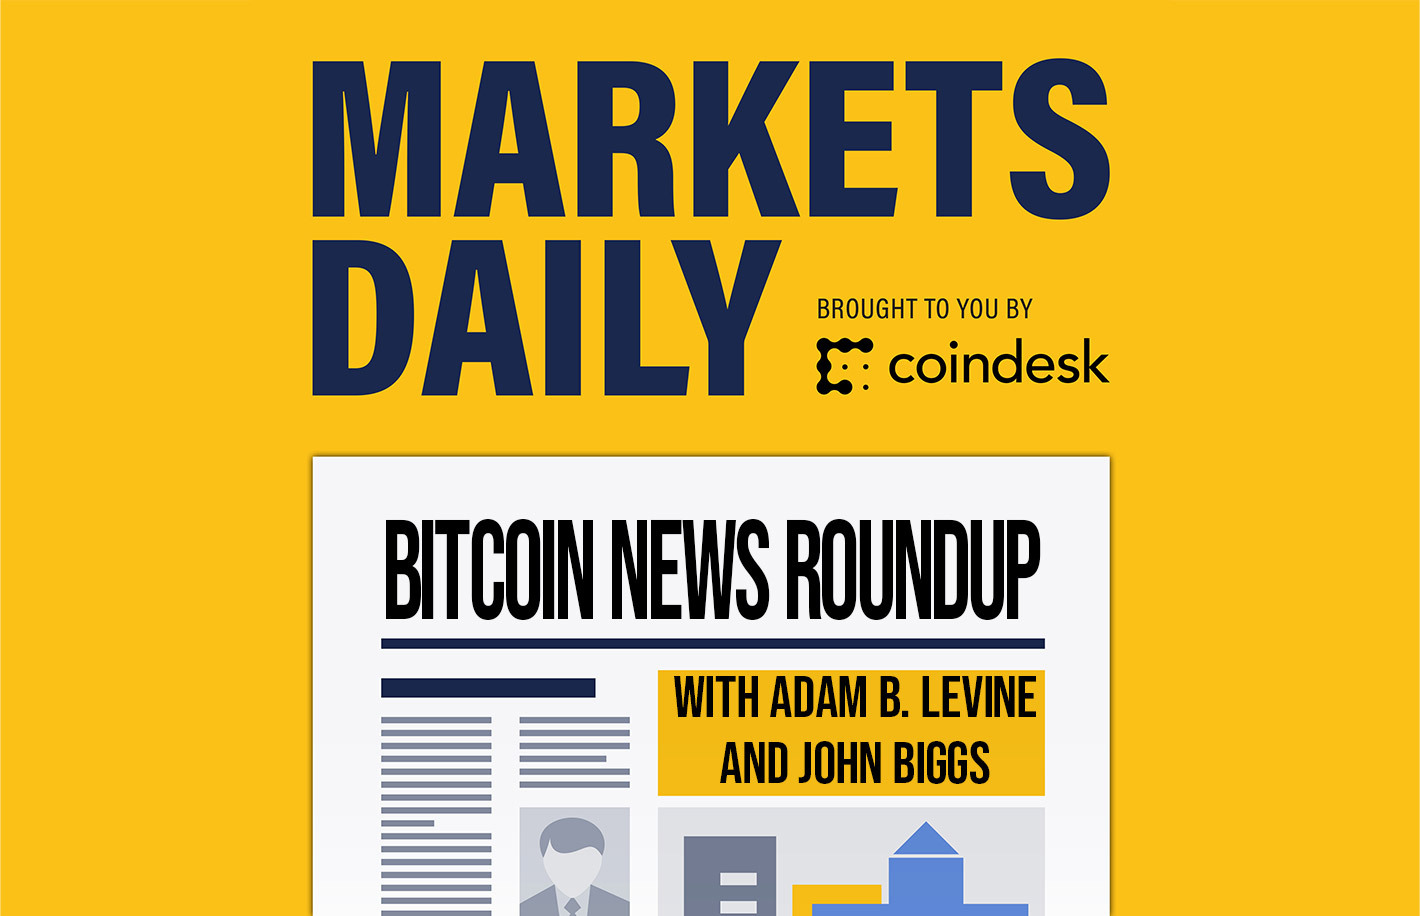 Bitcoin News Roundup for July 7, 2020 - CoinDesk